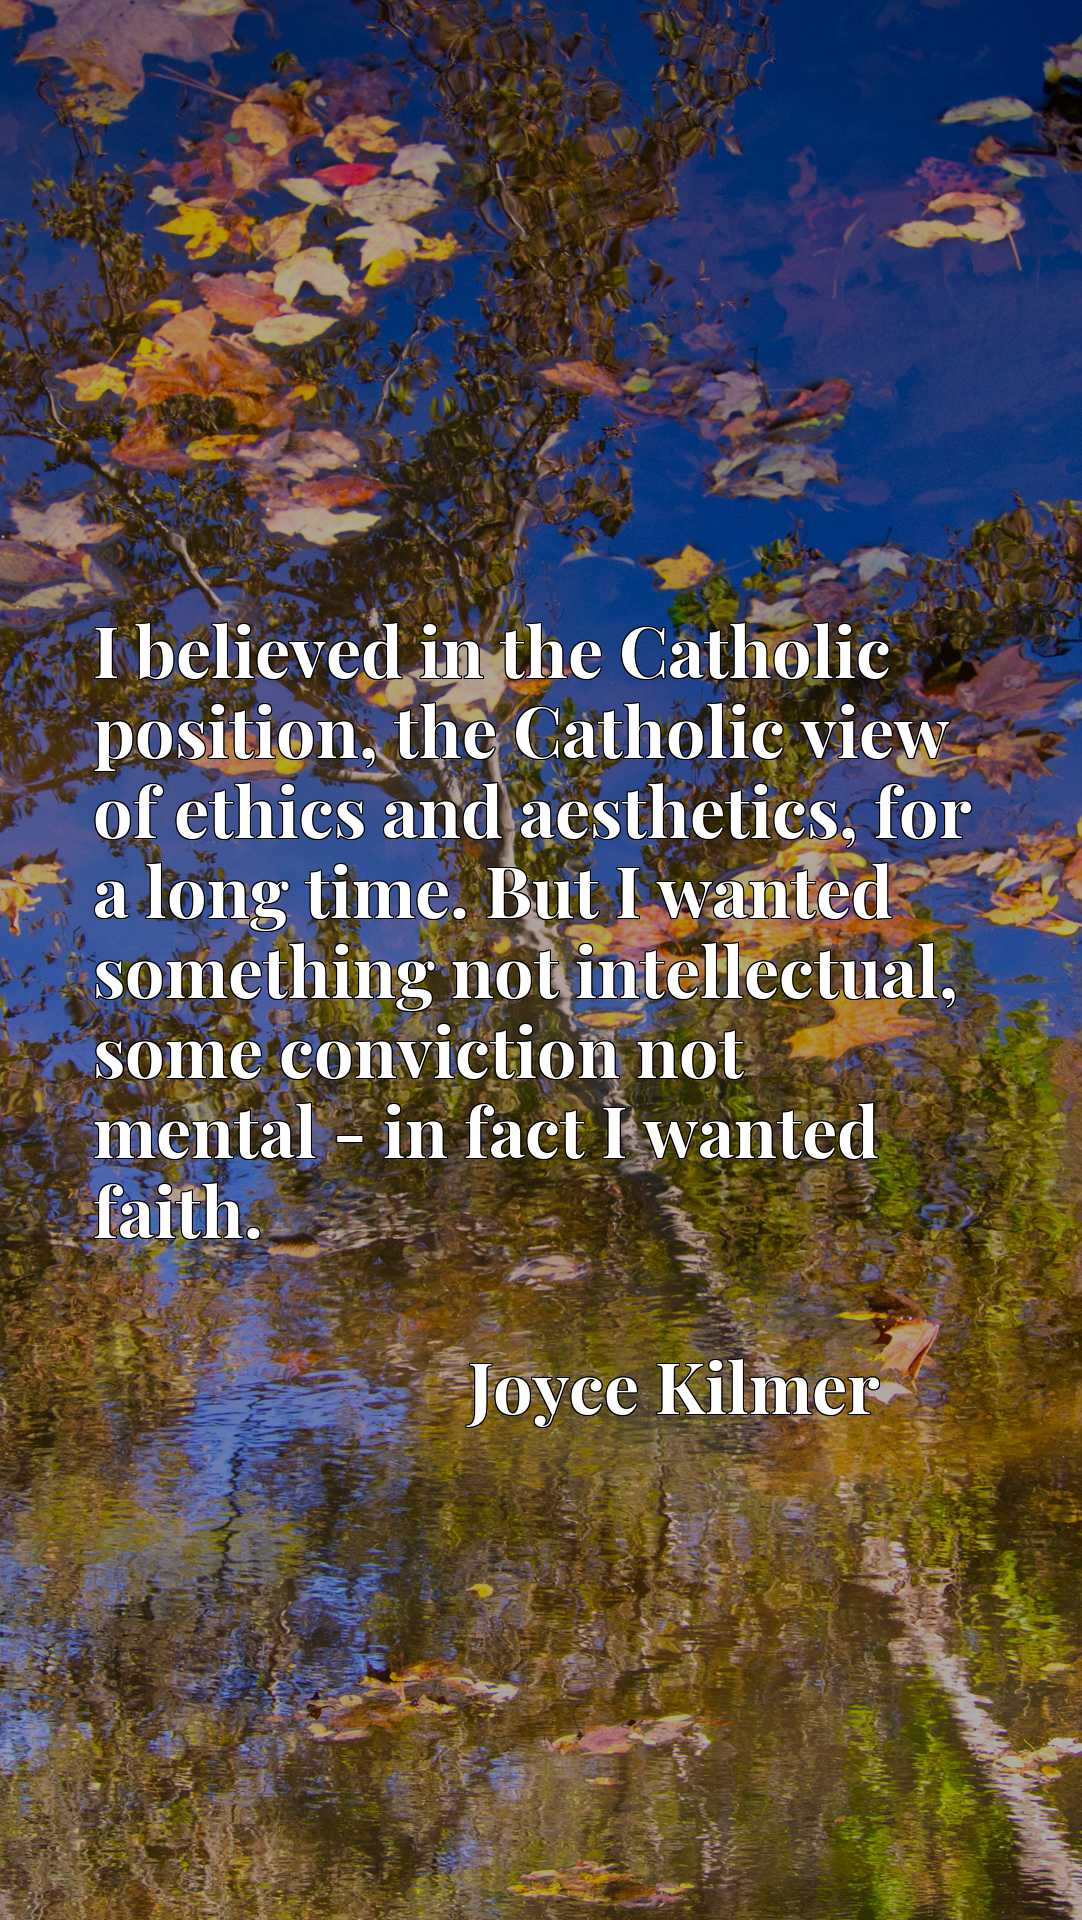 I believed in the Catholic position, the Catholic view of ethics and aesthetics, for a long time. But I wanted something not intellectual, some conviction not mental - in fact I wanted faith.